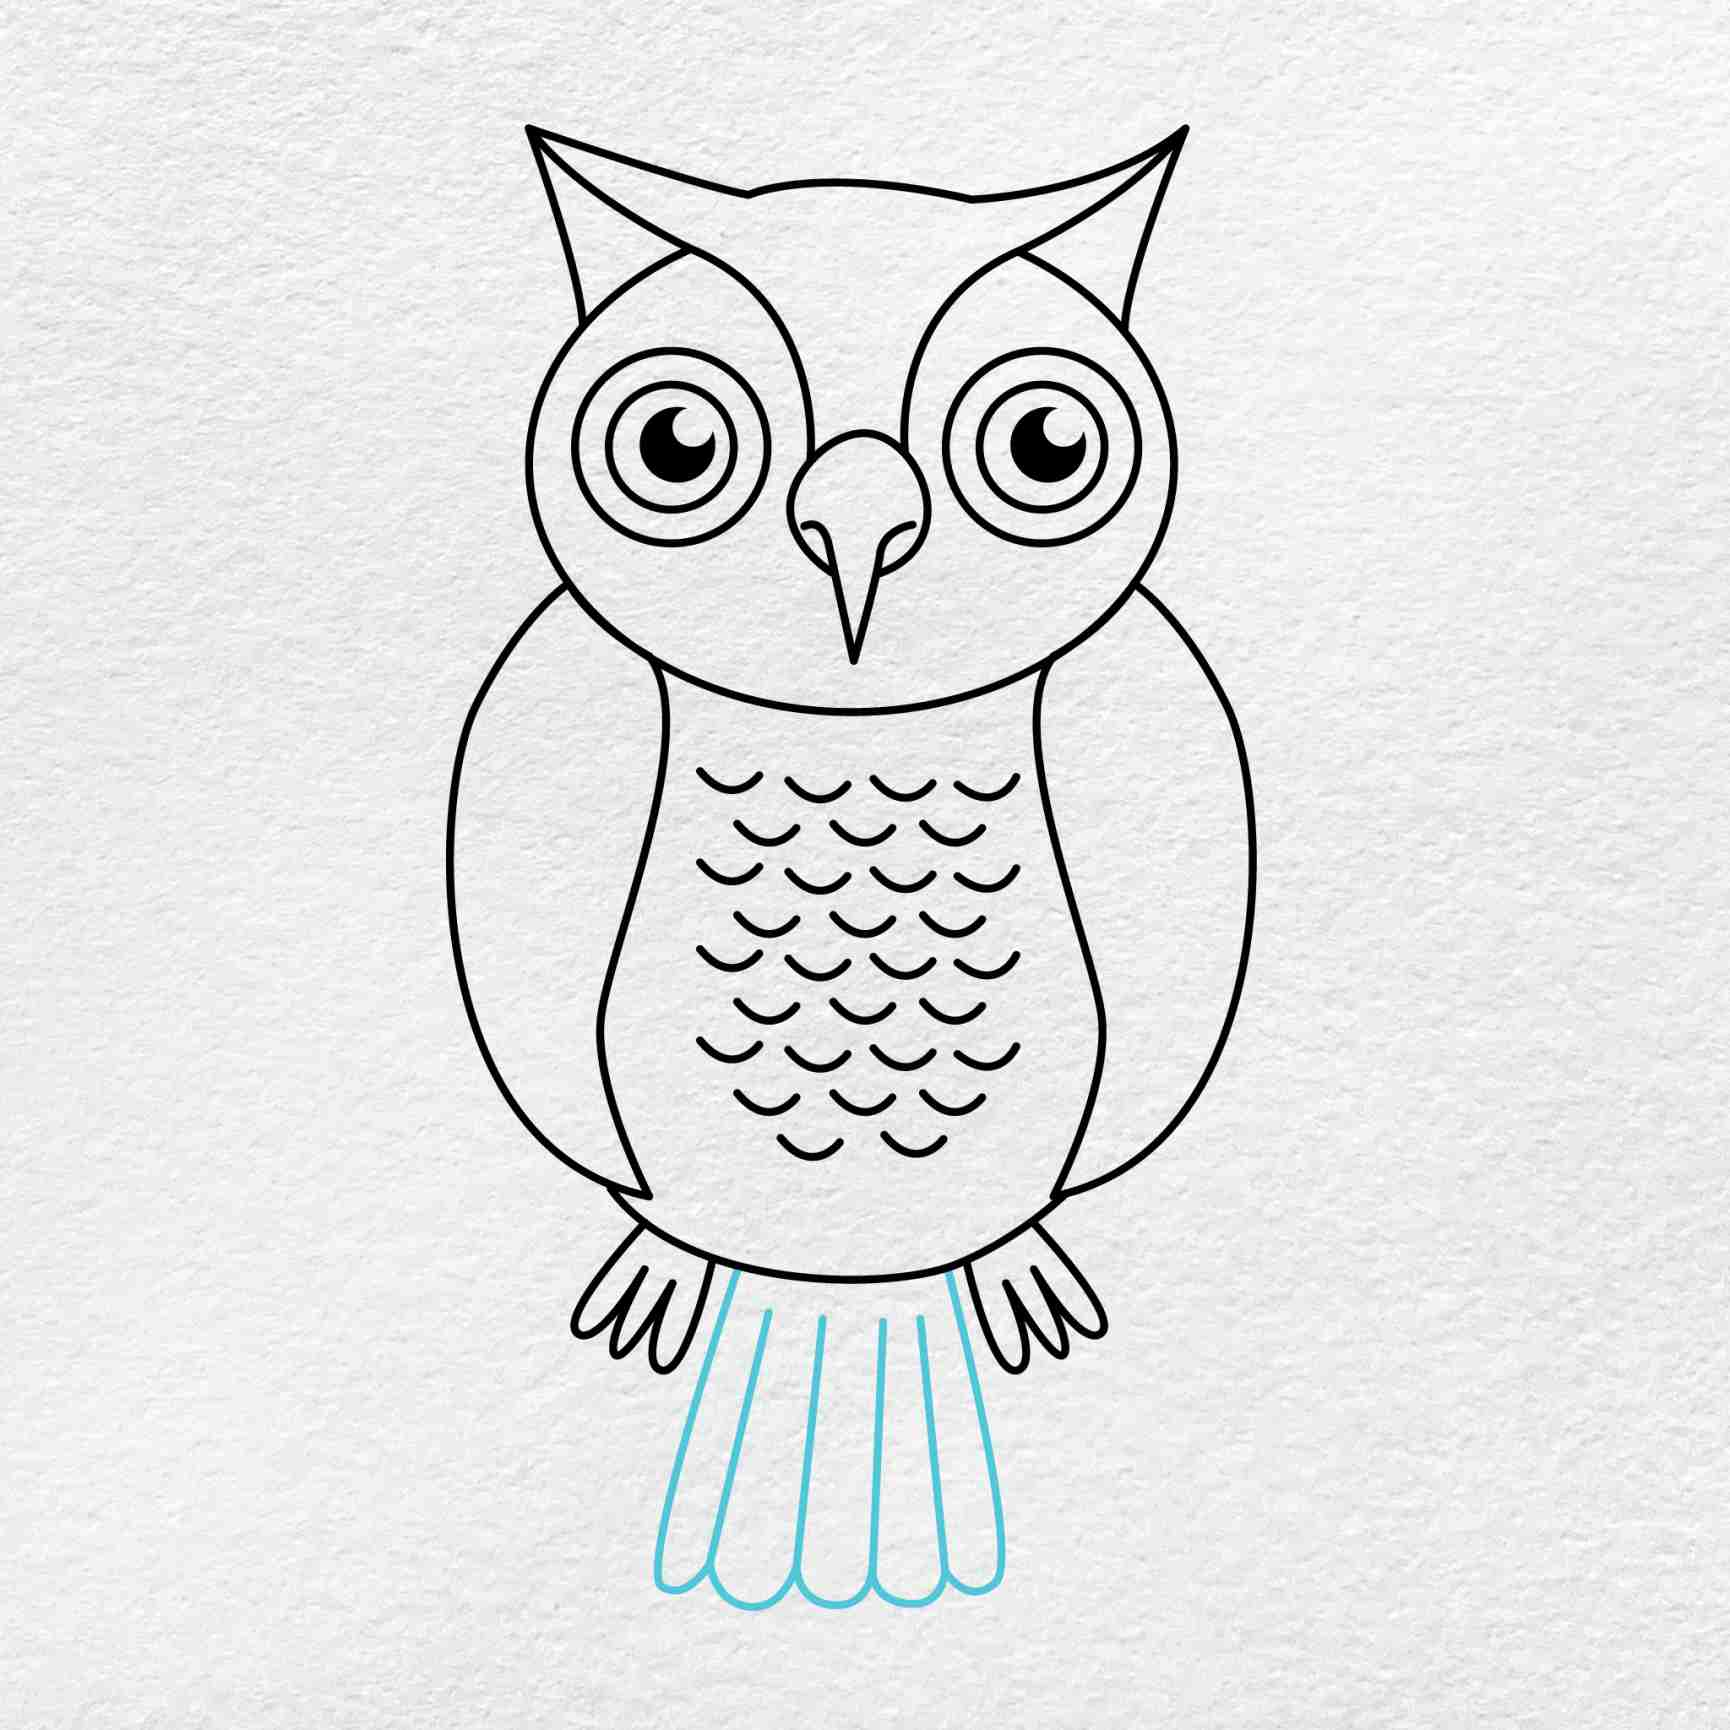 How To Draw An Owl: Step 8